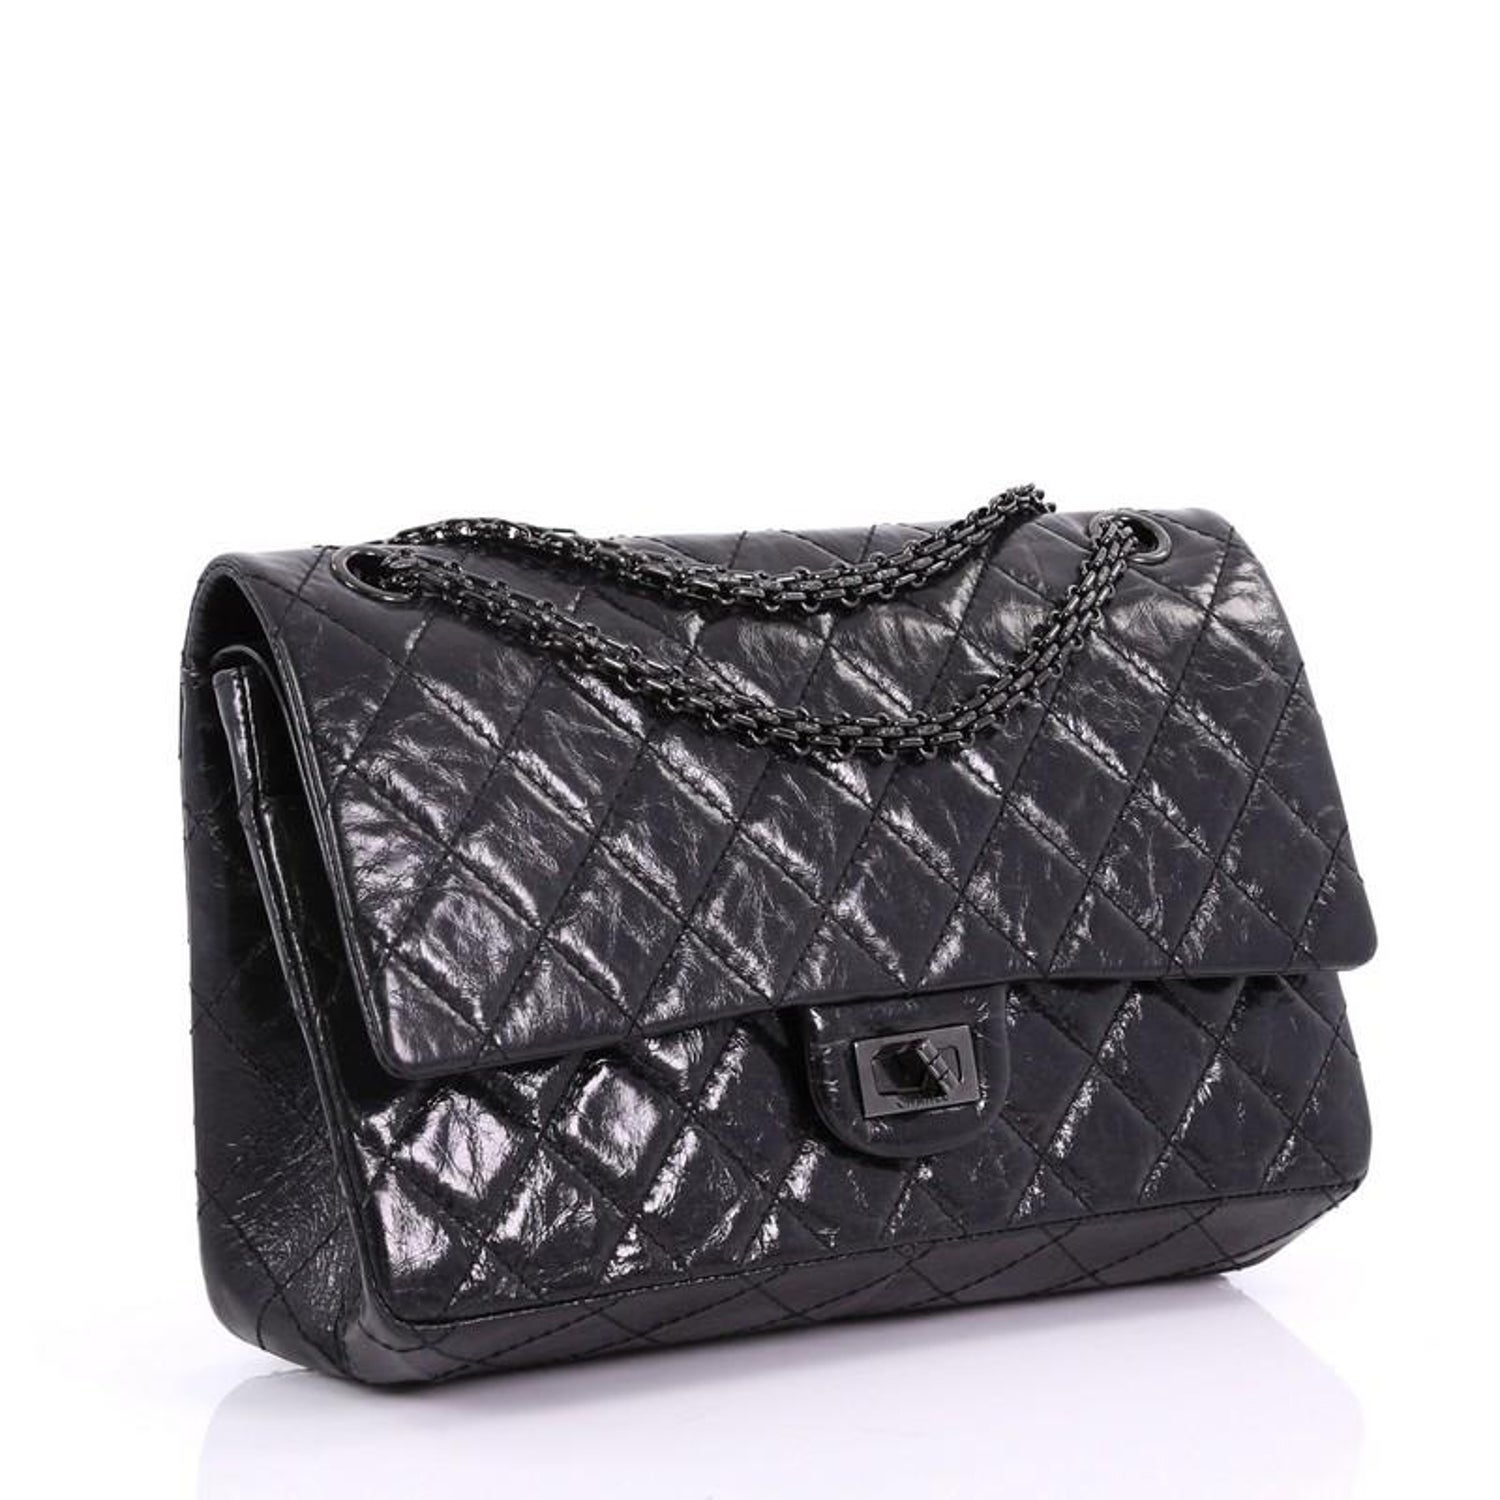 afc07abe9d0b Chanel So Black Reissue 2.55 Handbag Quilted Glazed Calfskin 226 at 1stdibs